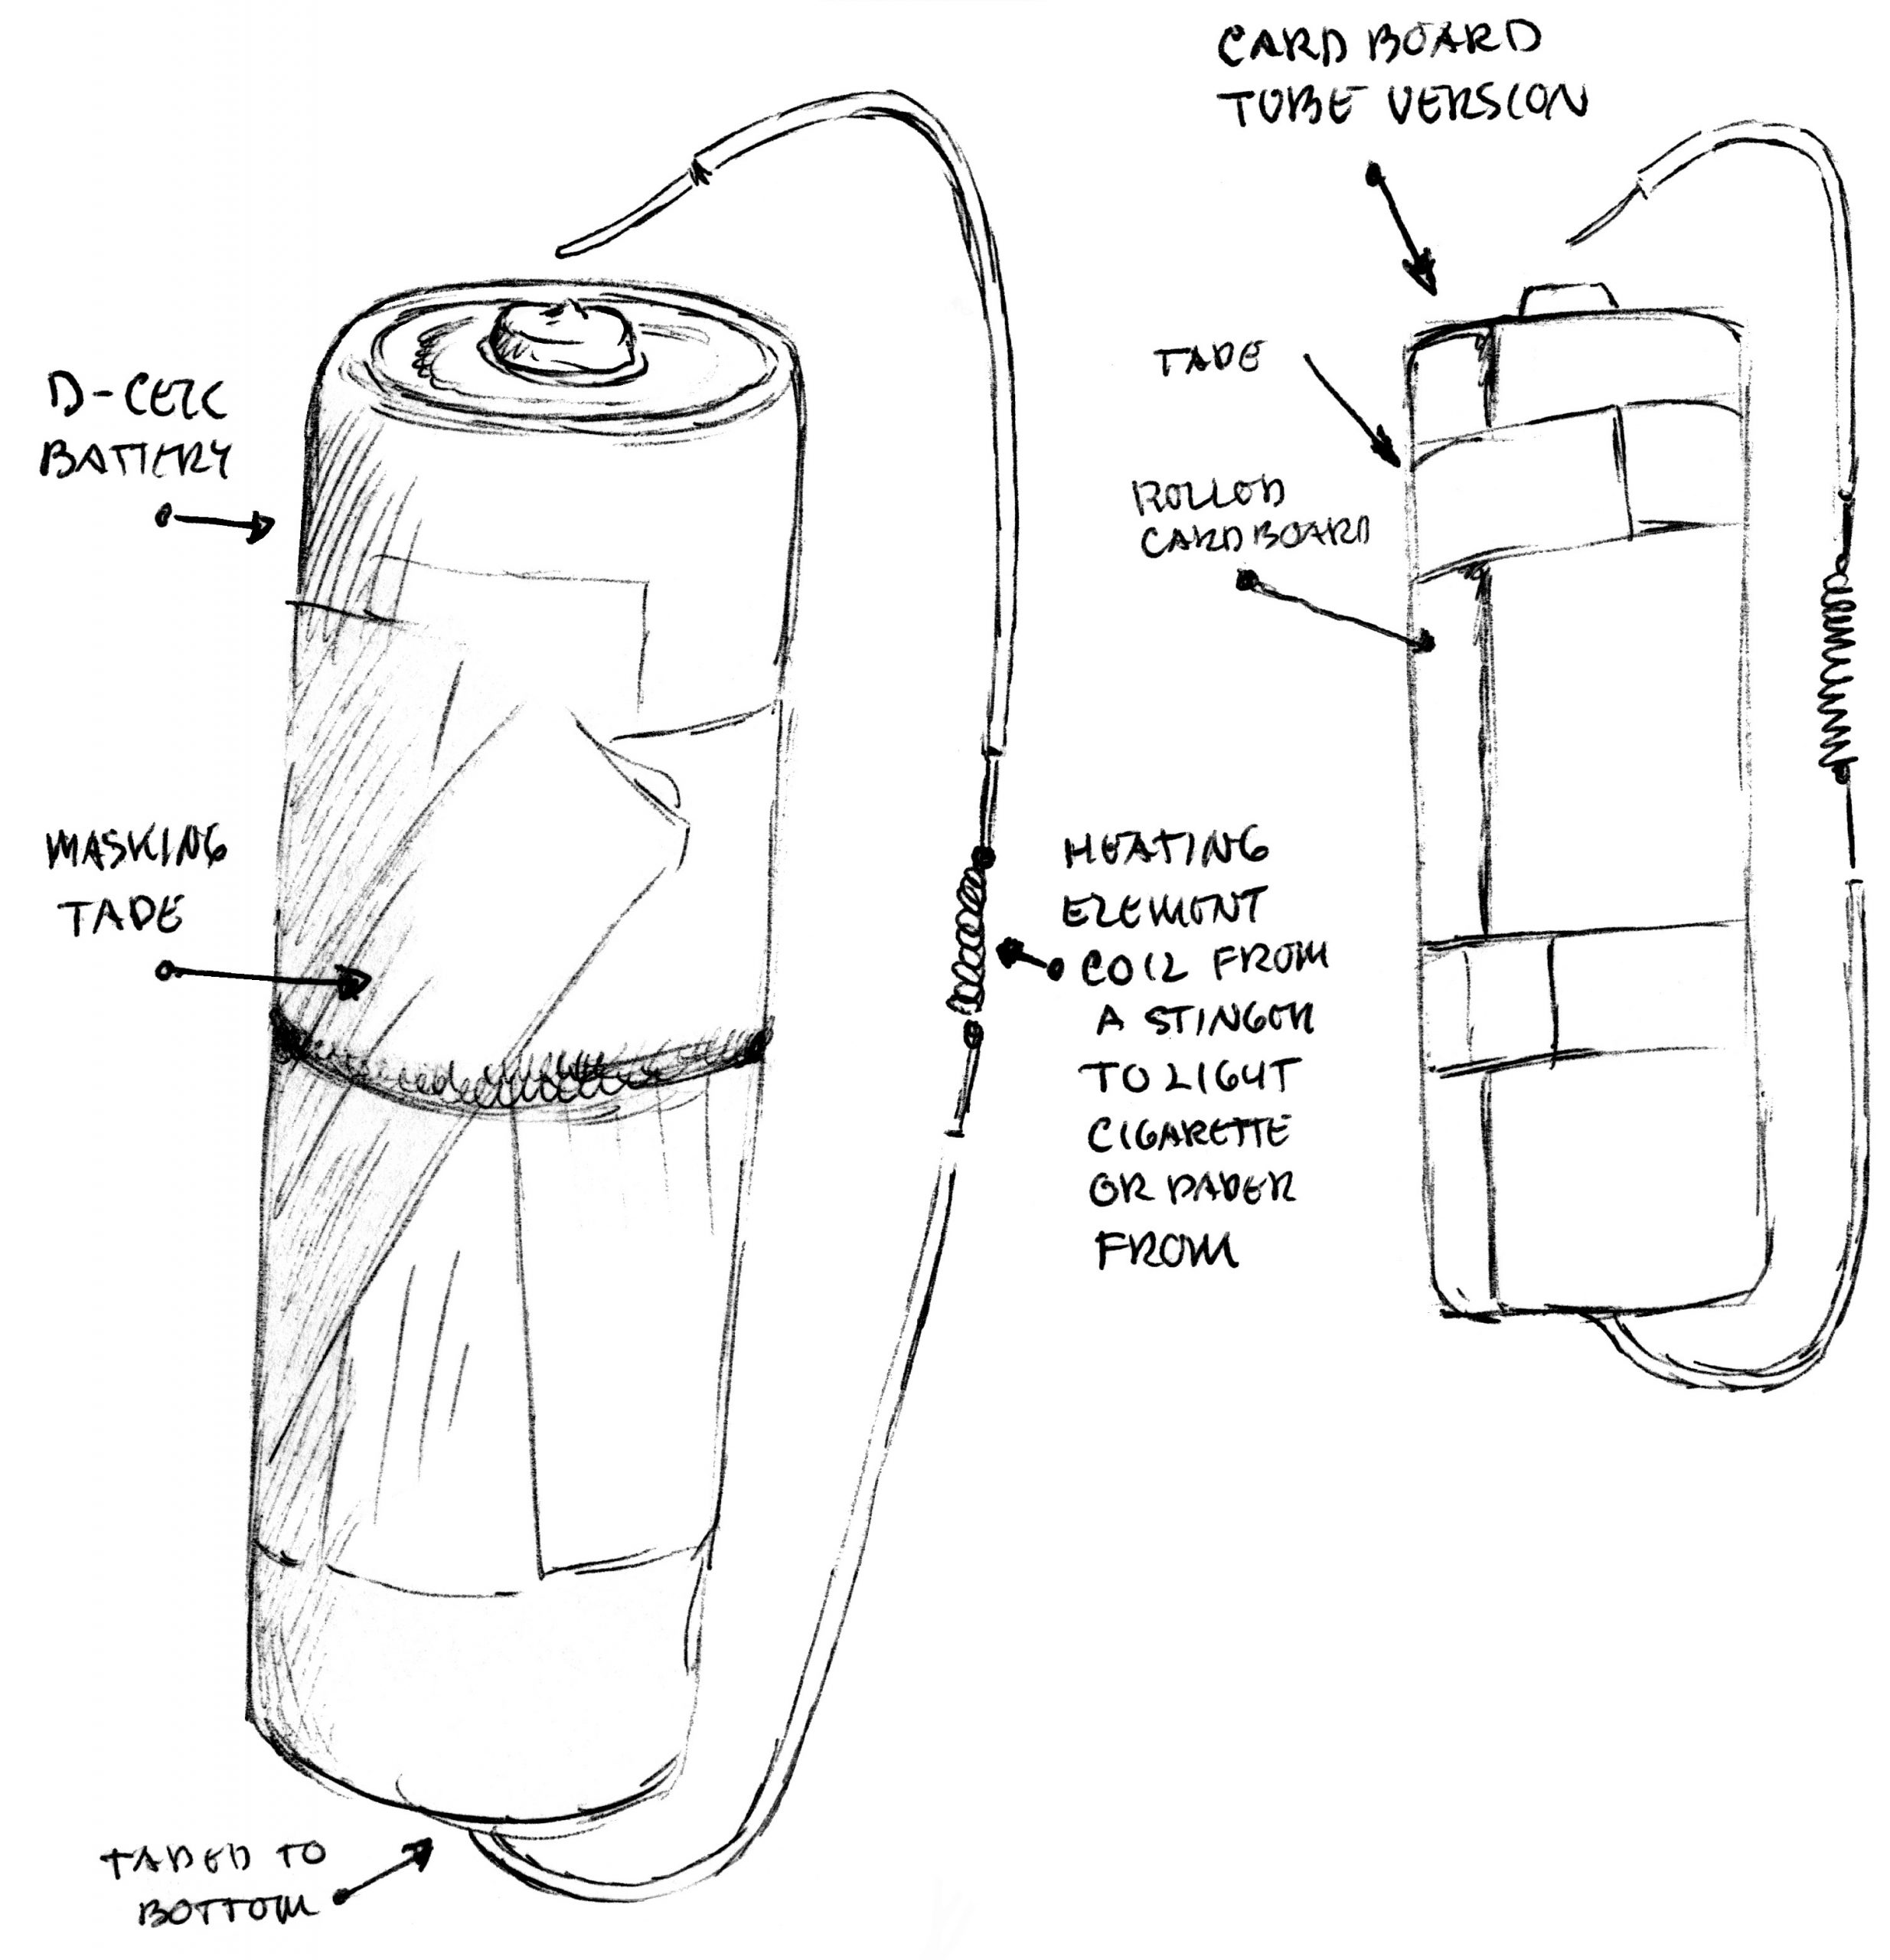 Angelo's drawing of his cigarette lighter invention